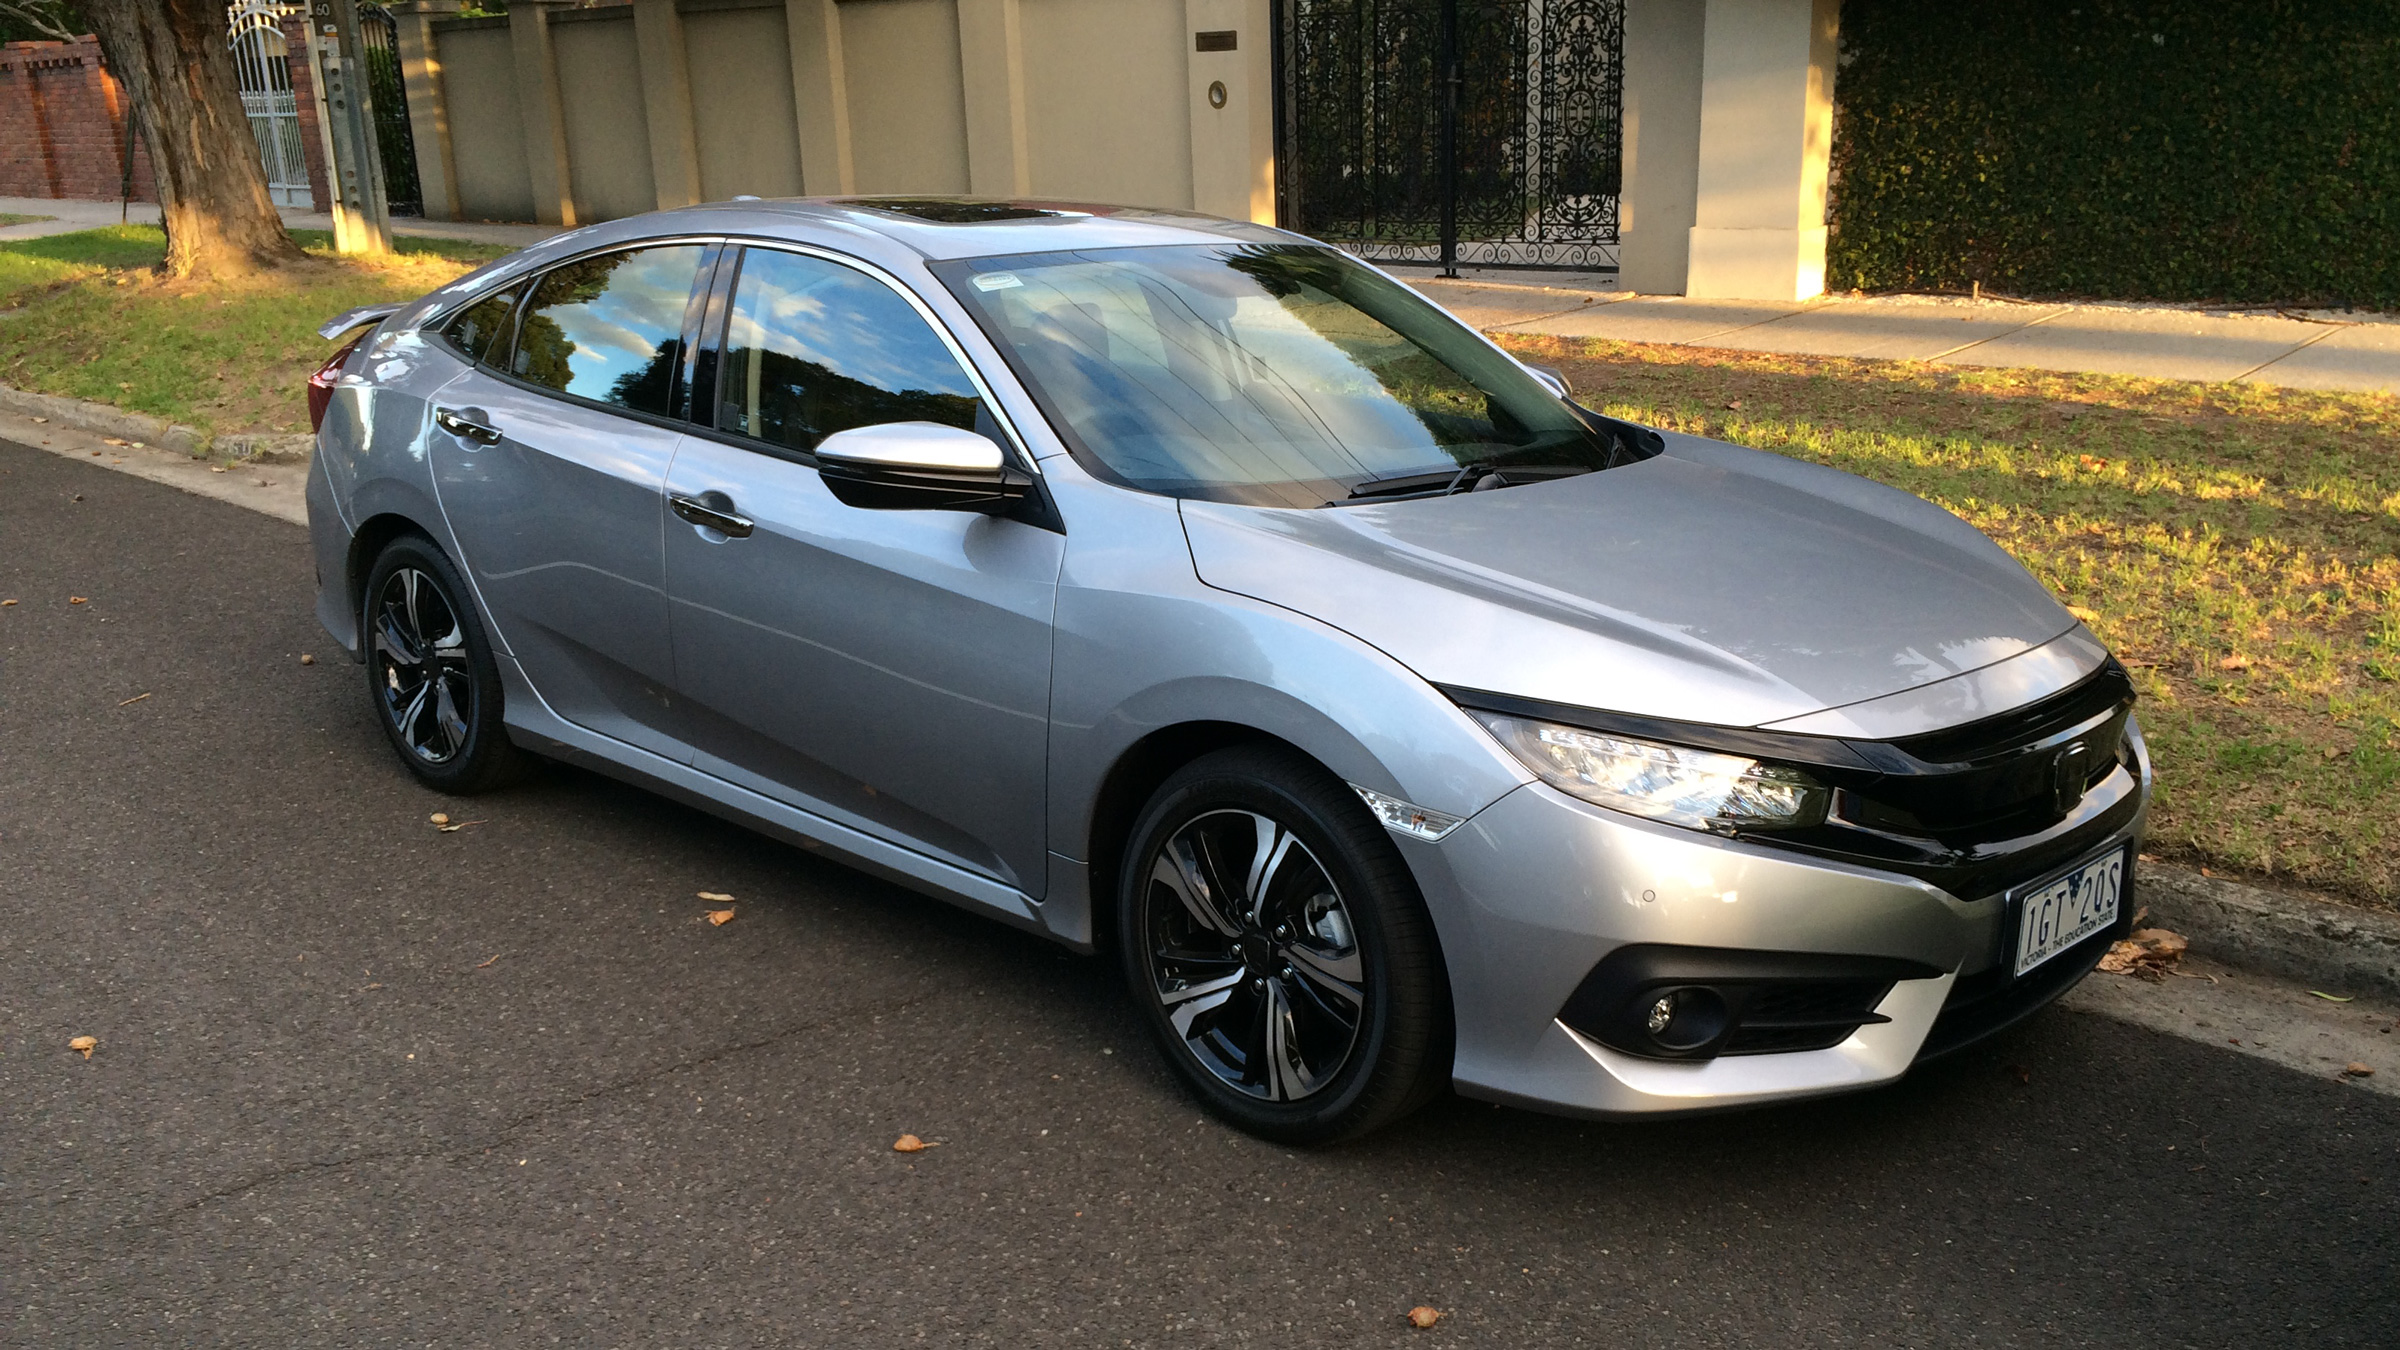 2017 honda civic spotted in melbourne ahead of australian launch photos 1 of 5. Black Bedroom Furniture Sets. Home Design Ideas